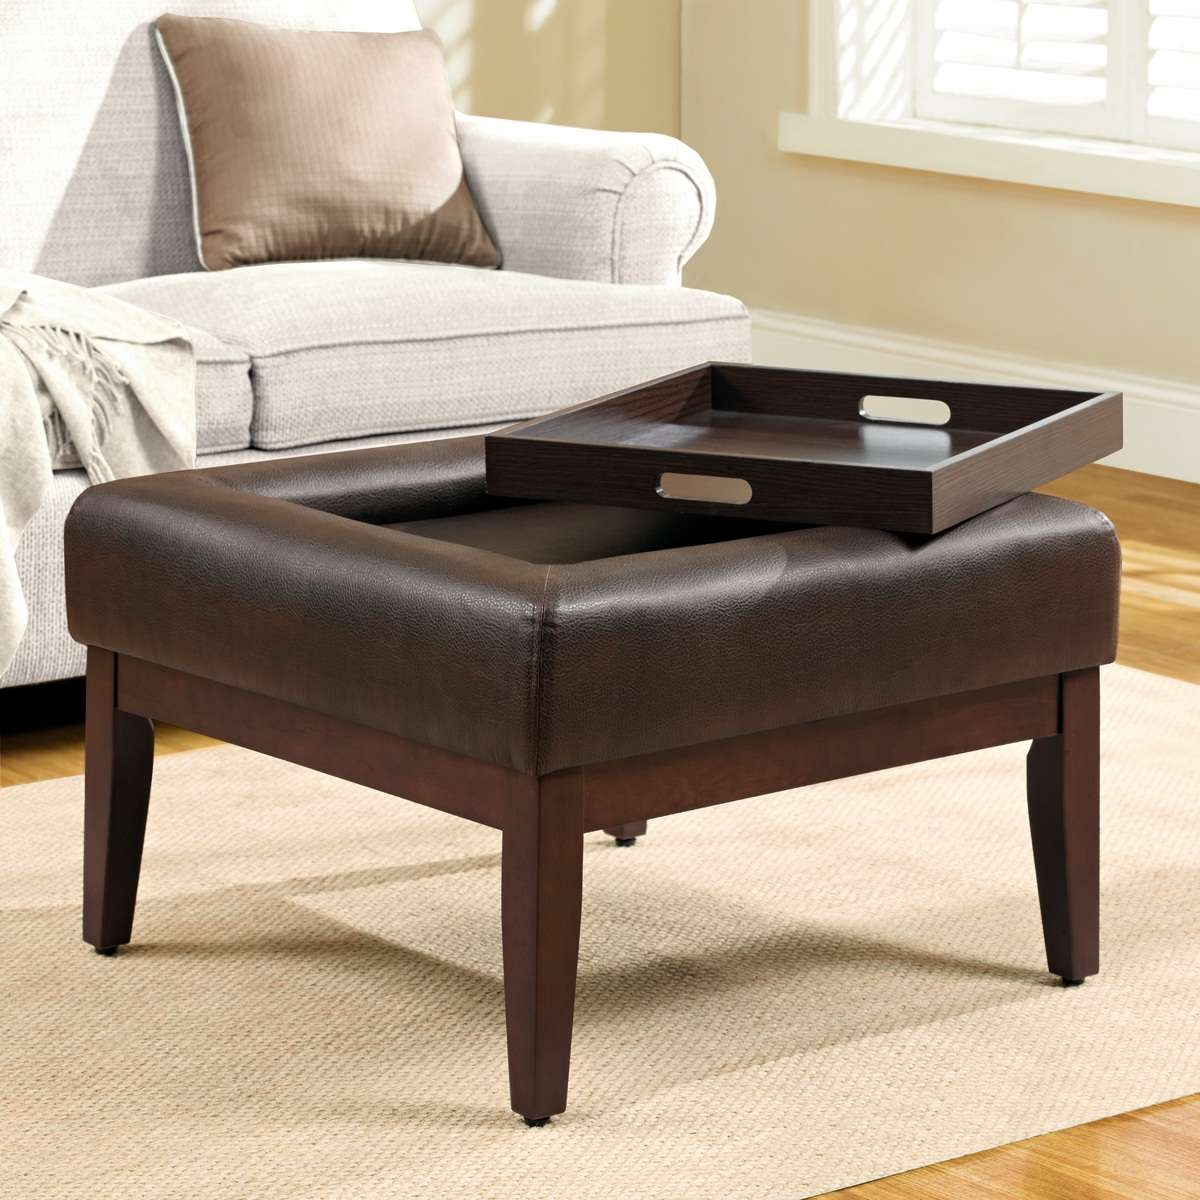 Popular Brown Leather Ottoman Coffee Tables With Storages With Regard To Simple Black Ottoman Coffee Table Designs With Storage – Laredoreads (View 13 of 20)